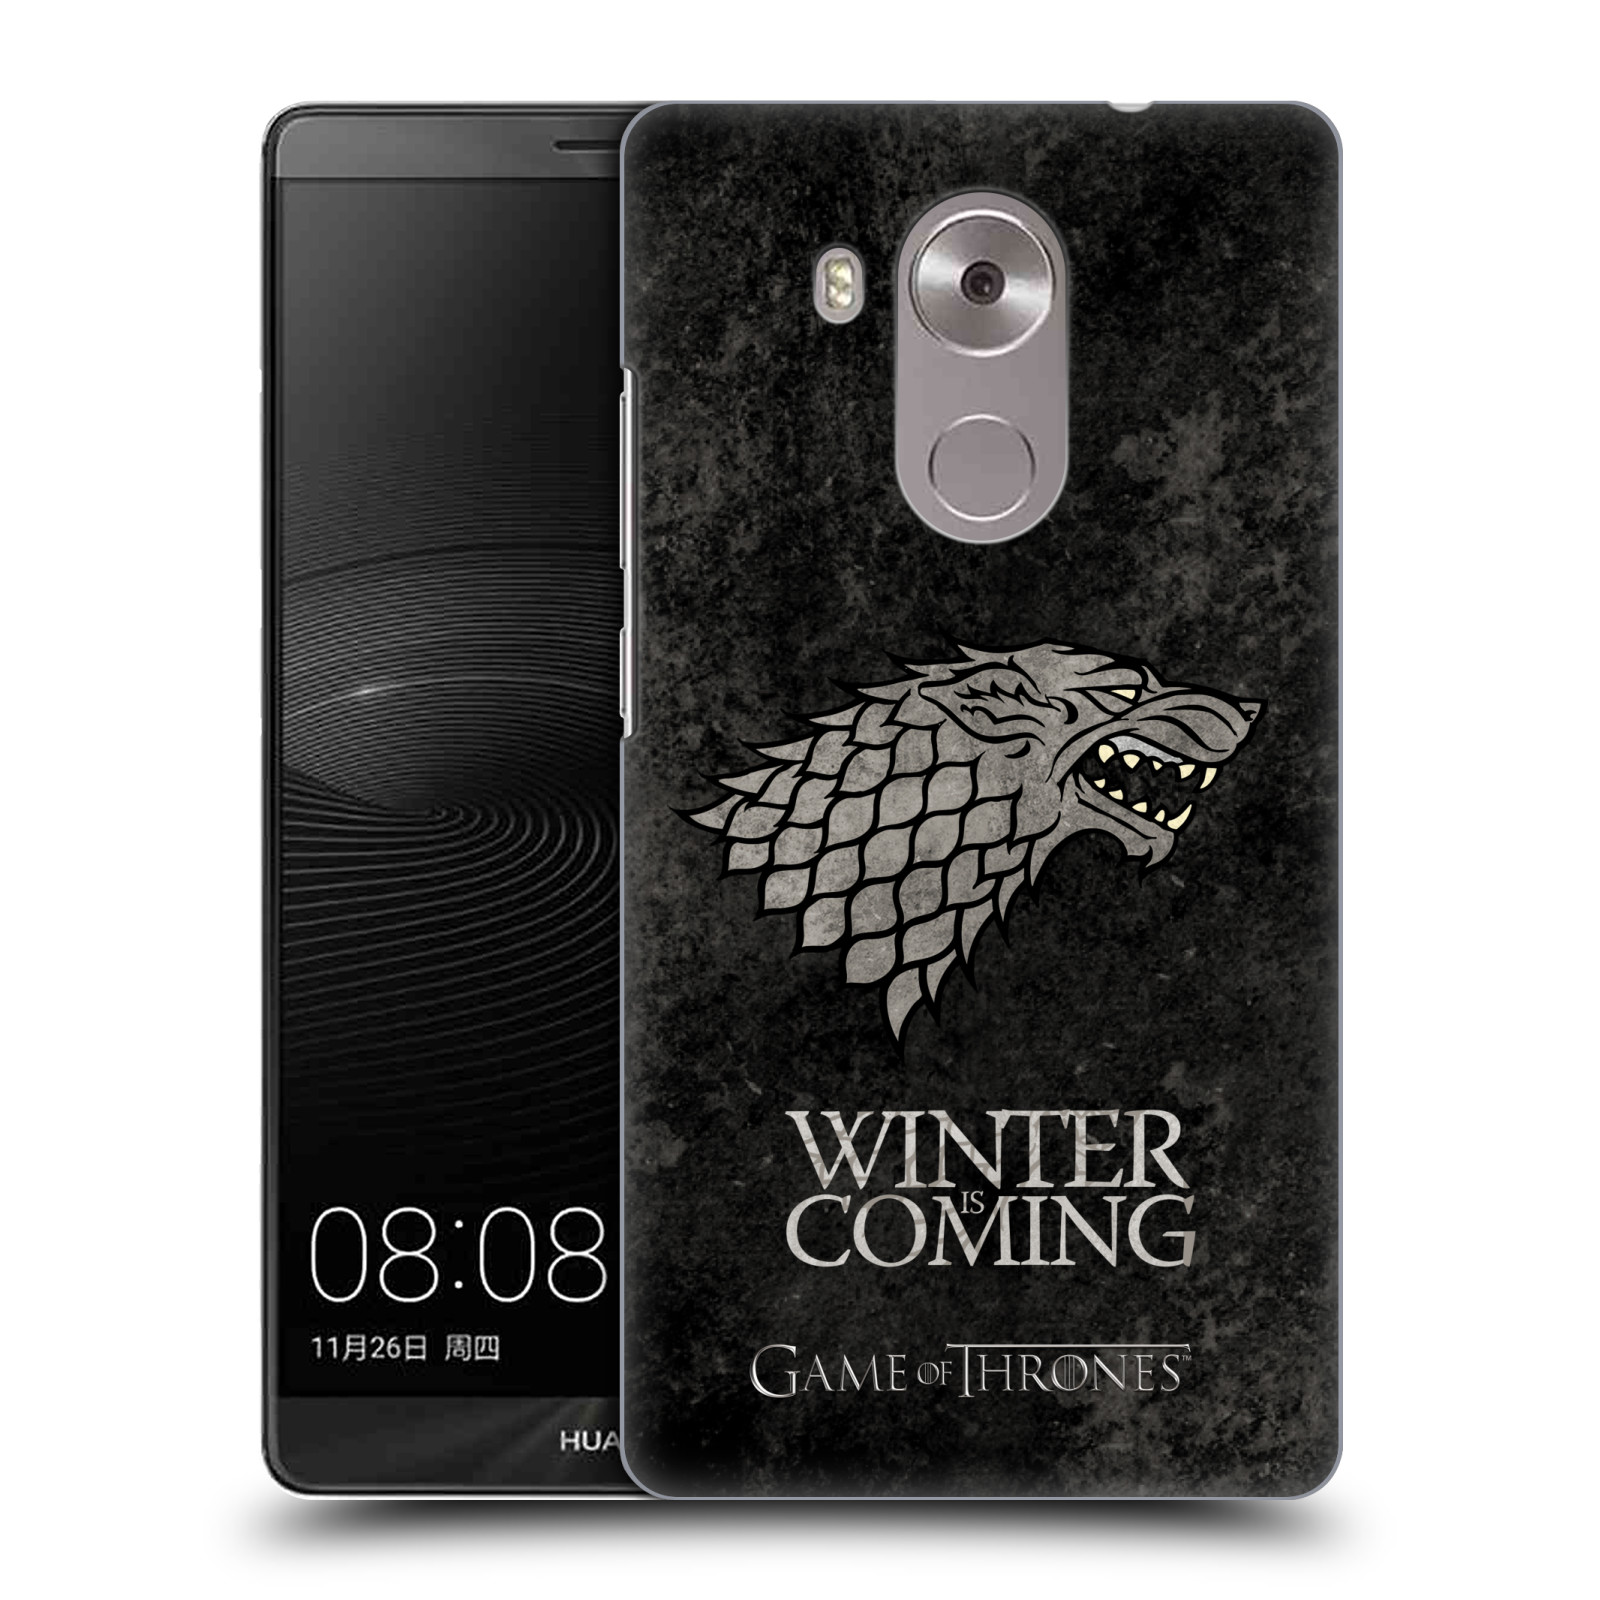 Plastové pouzdro na mobil Huawei Mate 8 HEAD CASE Hra o trůny - Stark - Winter is coming